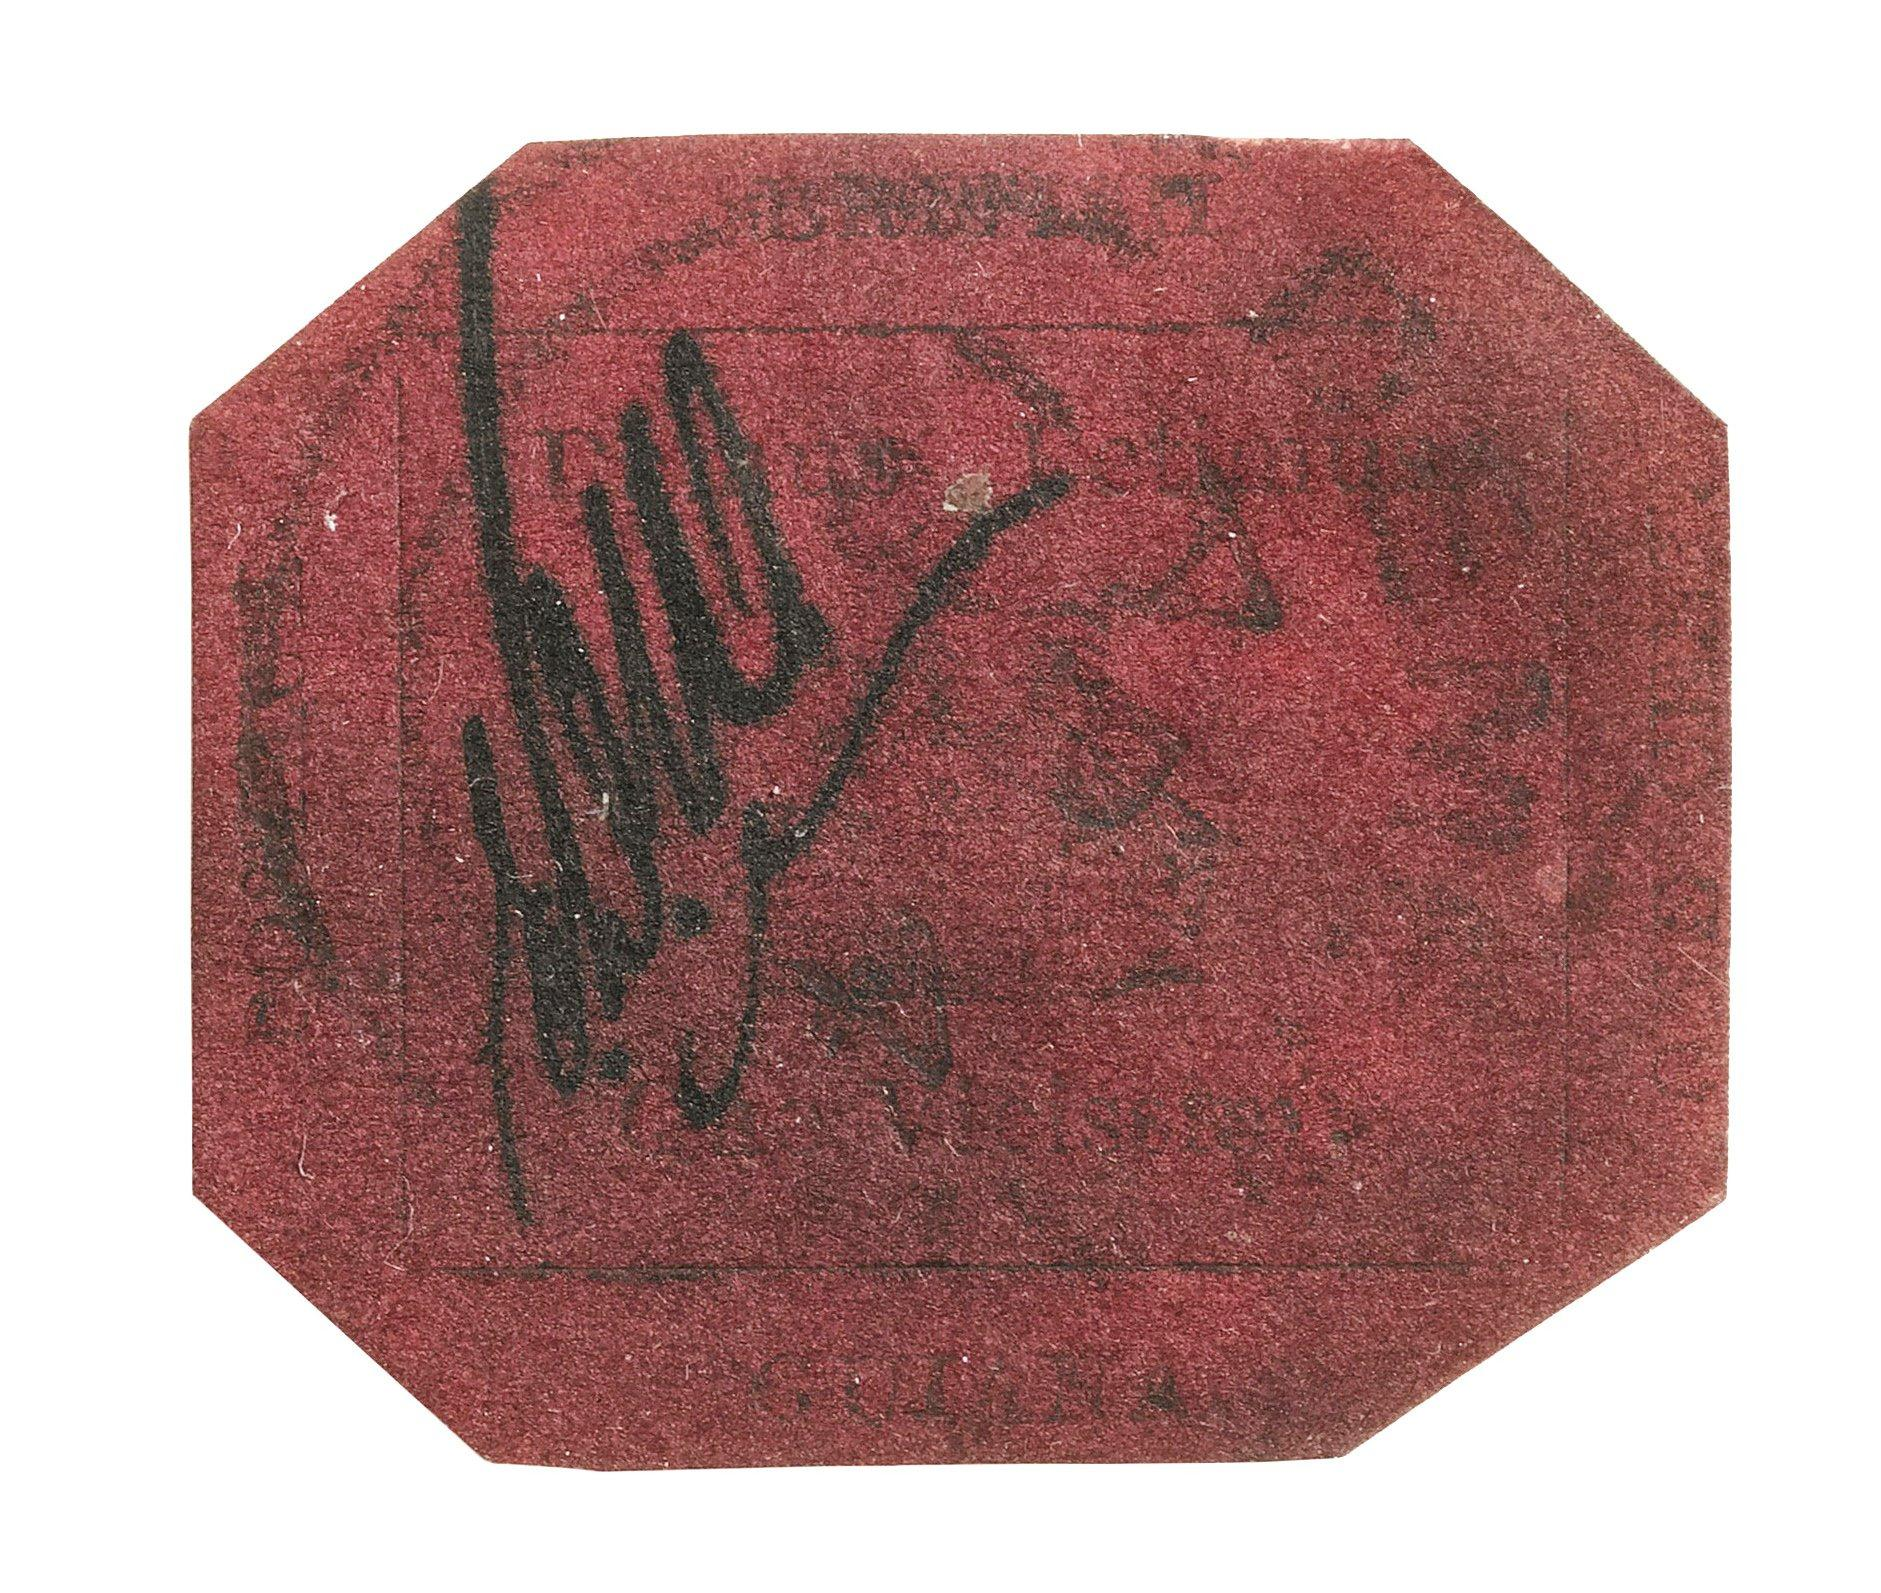 The one-cent 1856 British Guiana stamp could set another auction record.